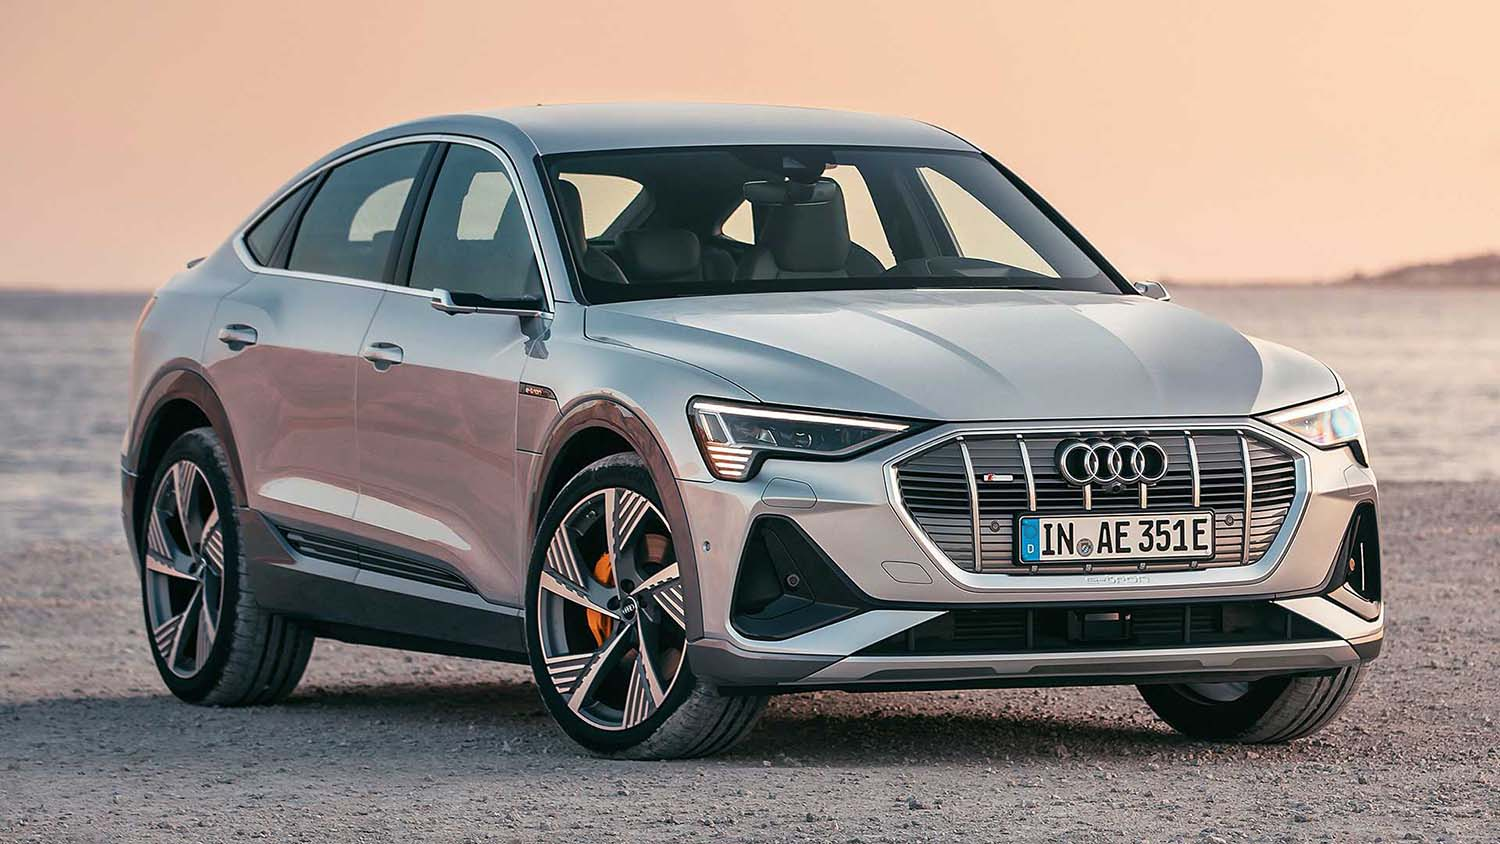 Top 10 Sustainable Luxury Cars for 2020: Audi e-Tron